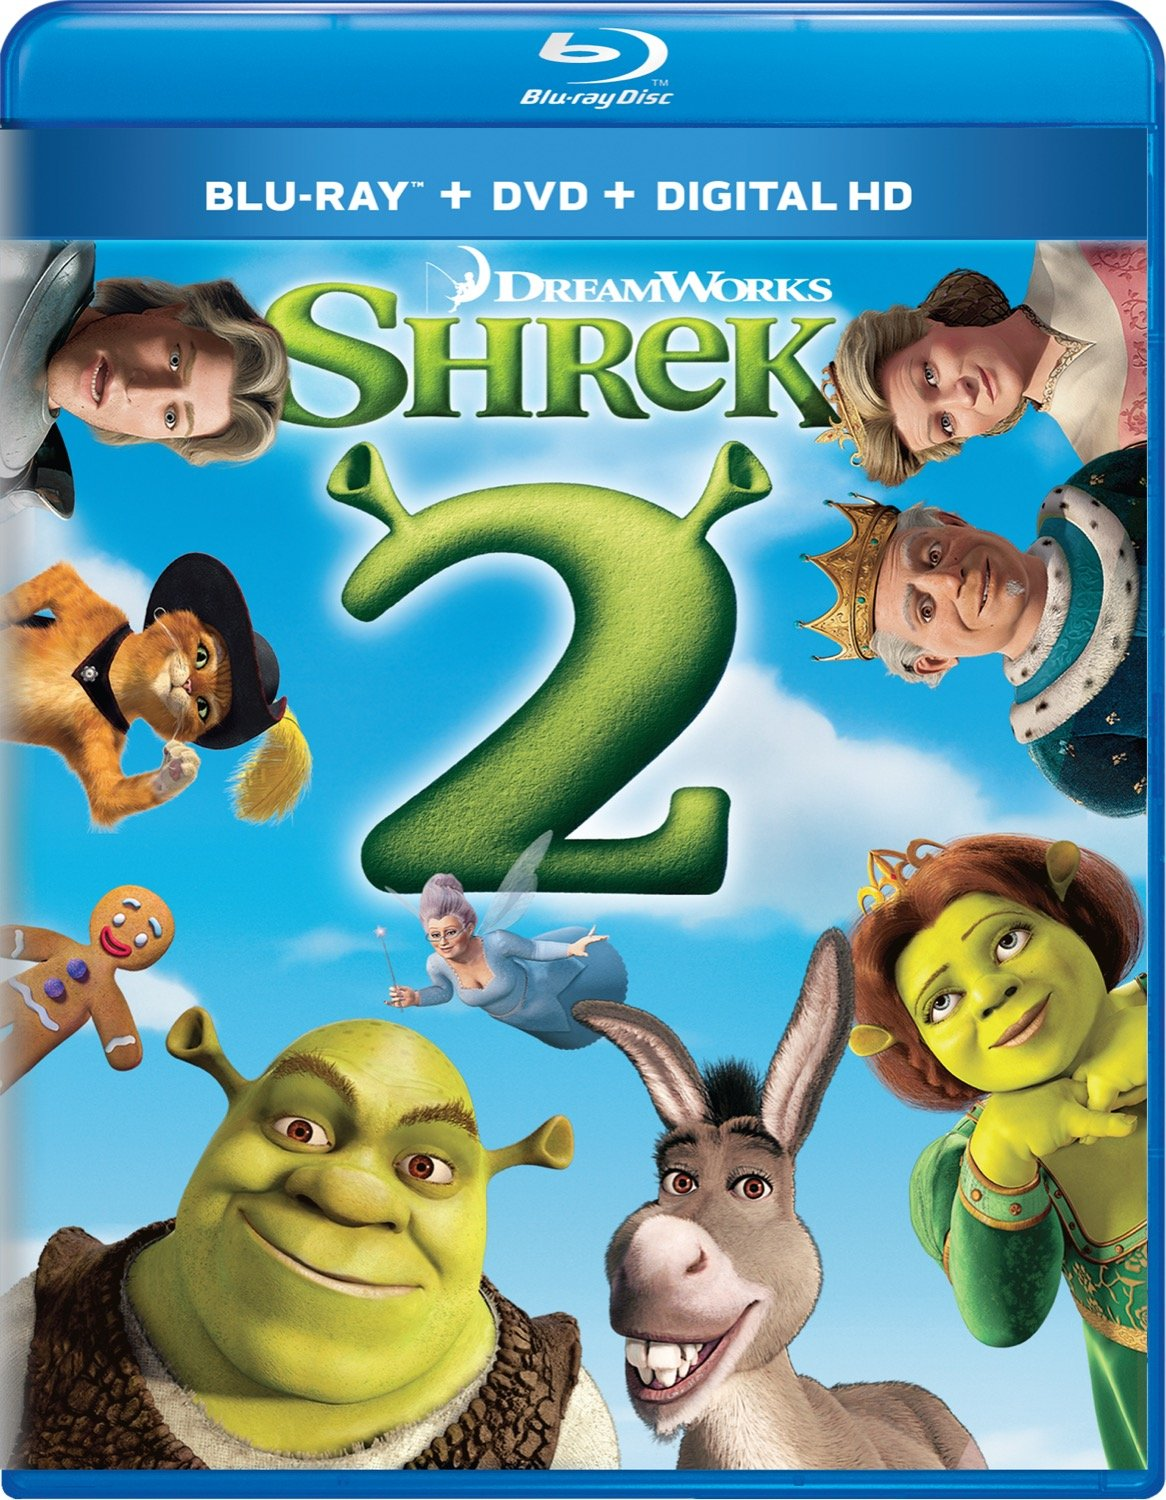 Amazon.com: Shrek 2 [Blu-ray]: Mike Myers, Eddie Murphy, Cameron Diaz,  Julie Andrews, Antonio Banderas, John Cleese, Rupert Everett, Jennifer  Saunders, Larry King, Joan Rivers, Andrew Adamson, Kelly Asbury, Conrad  Vernon, Aron Warner,